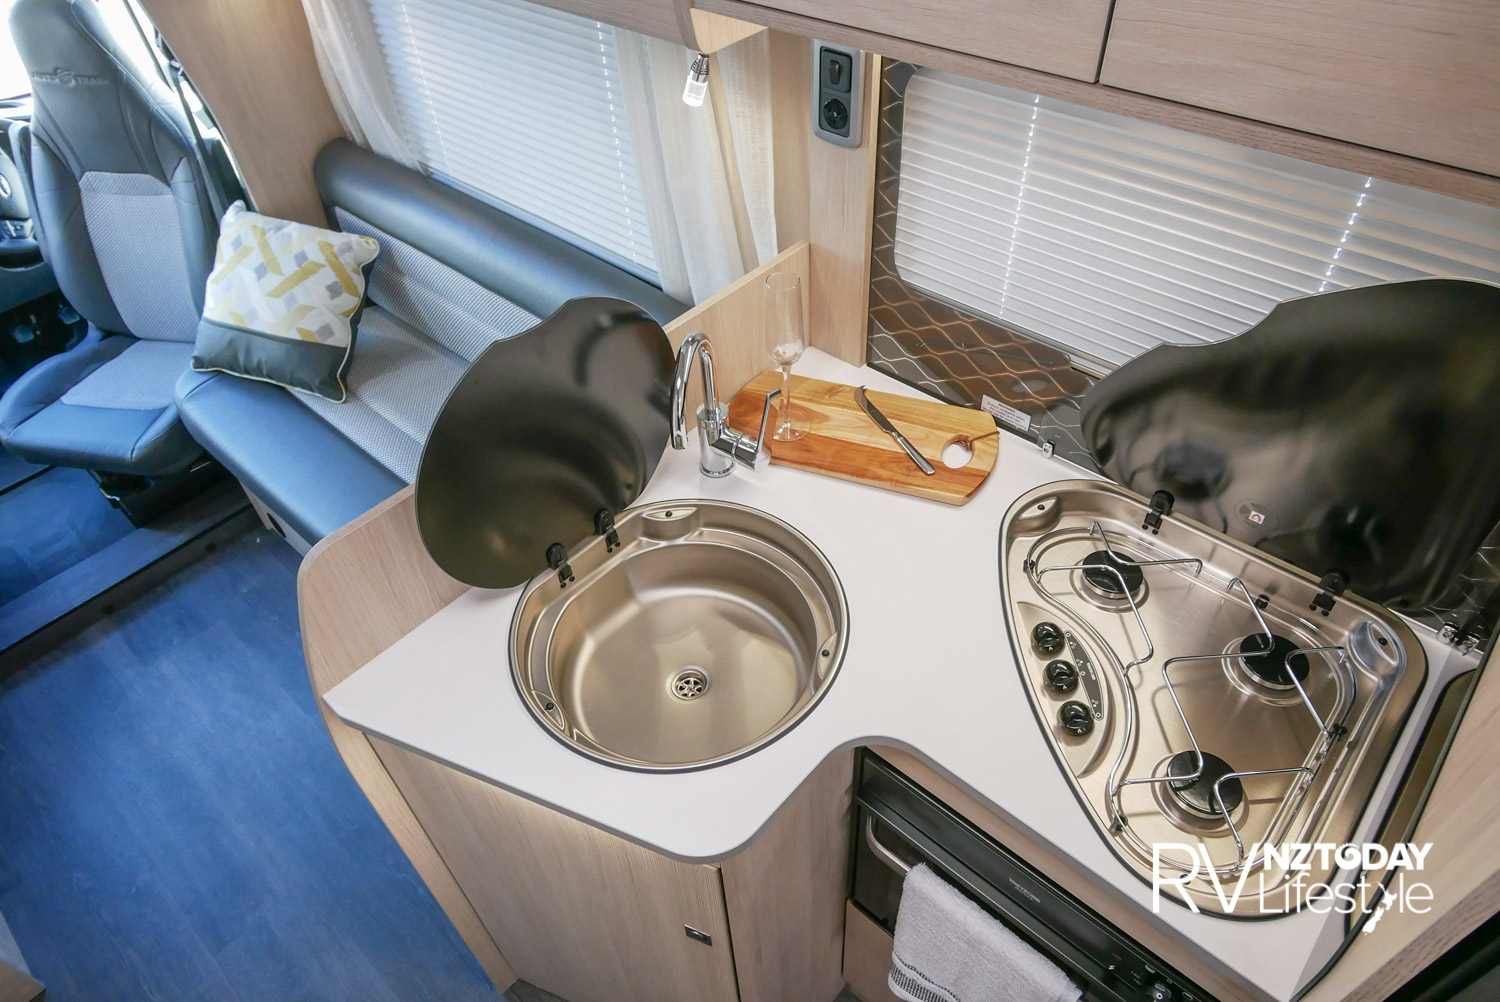 The kitchen area has a compact L-shaped bench, three-burner gas hob and the round stainless steel sink – both with glass lids for preparation space. An under-bench combined gas oven/grill, and under-sink storage cupboard with slide-out utility draw inside